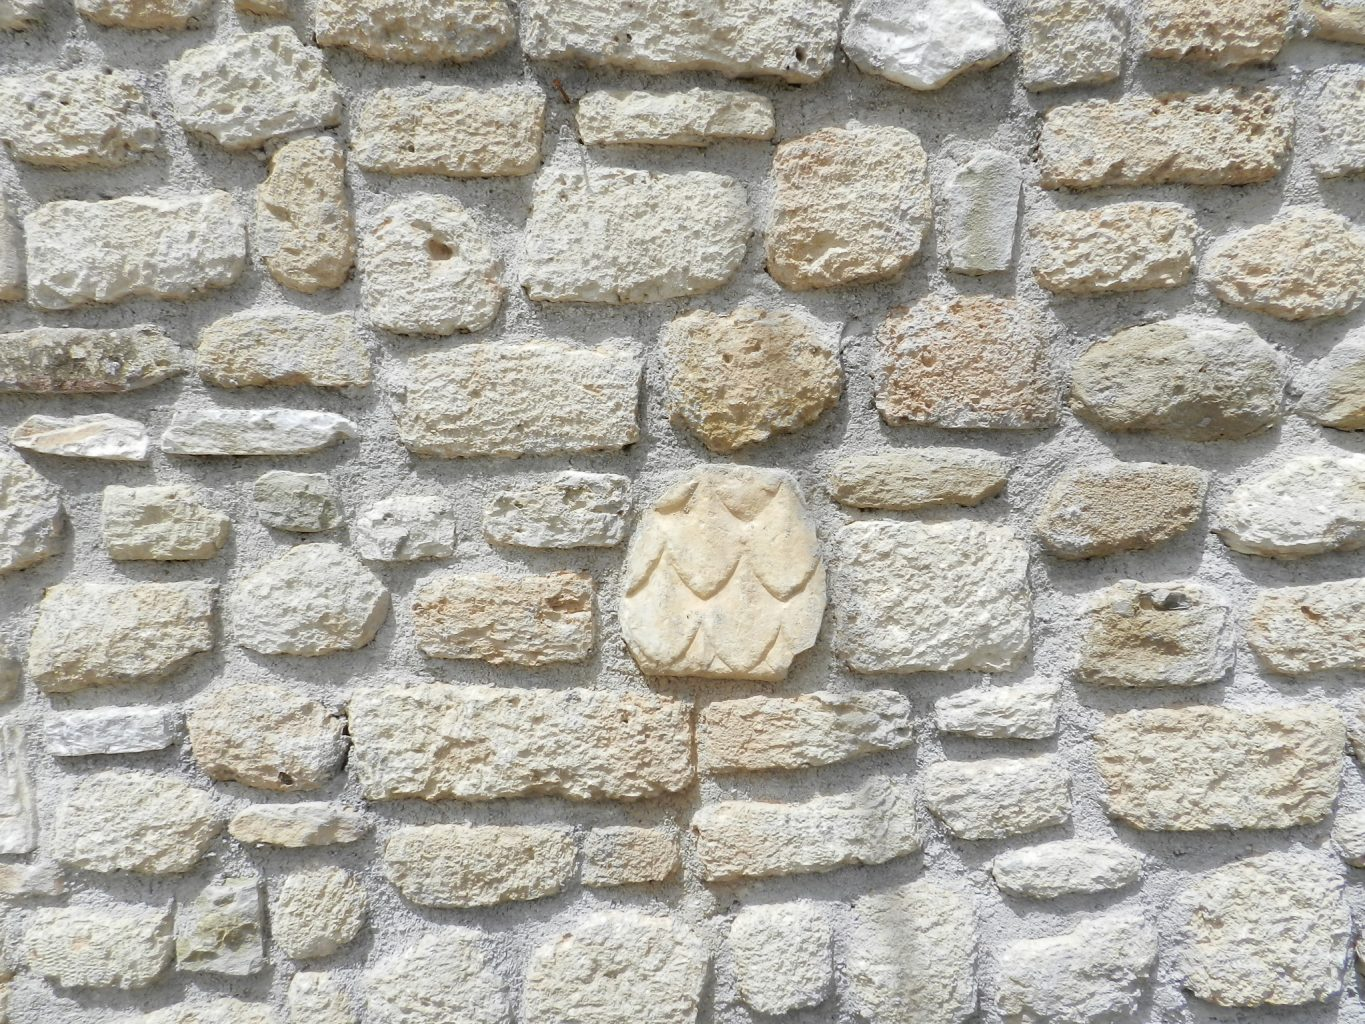 Village house wall with recycled stone, Corinth, Greece.